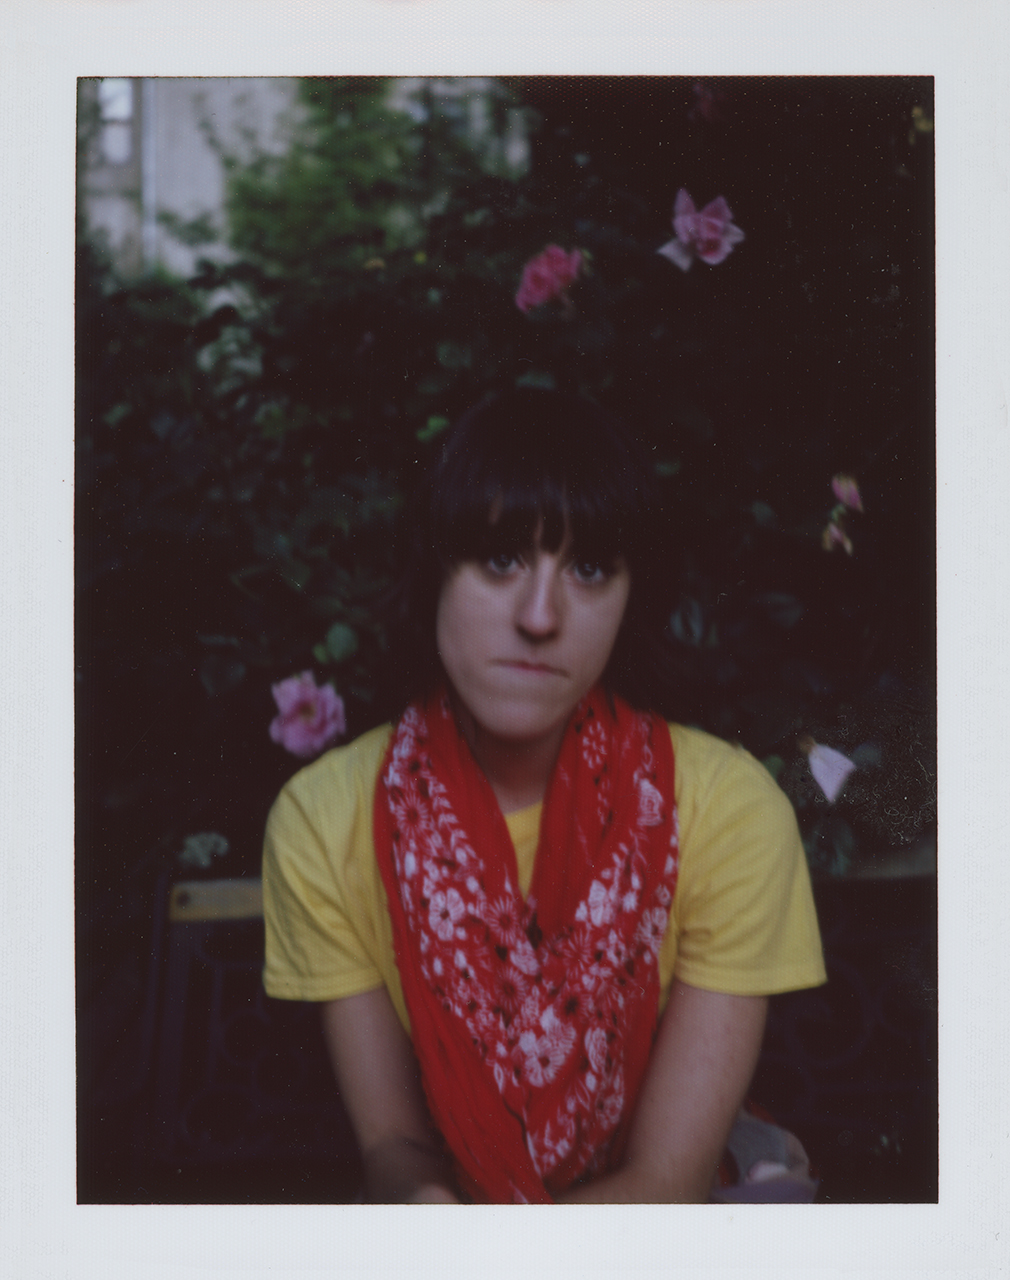 Nicasia on FP-100C Silk